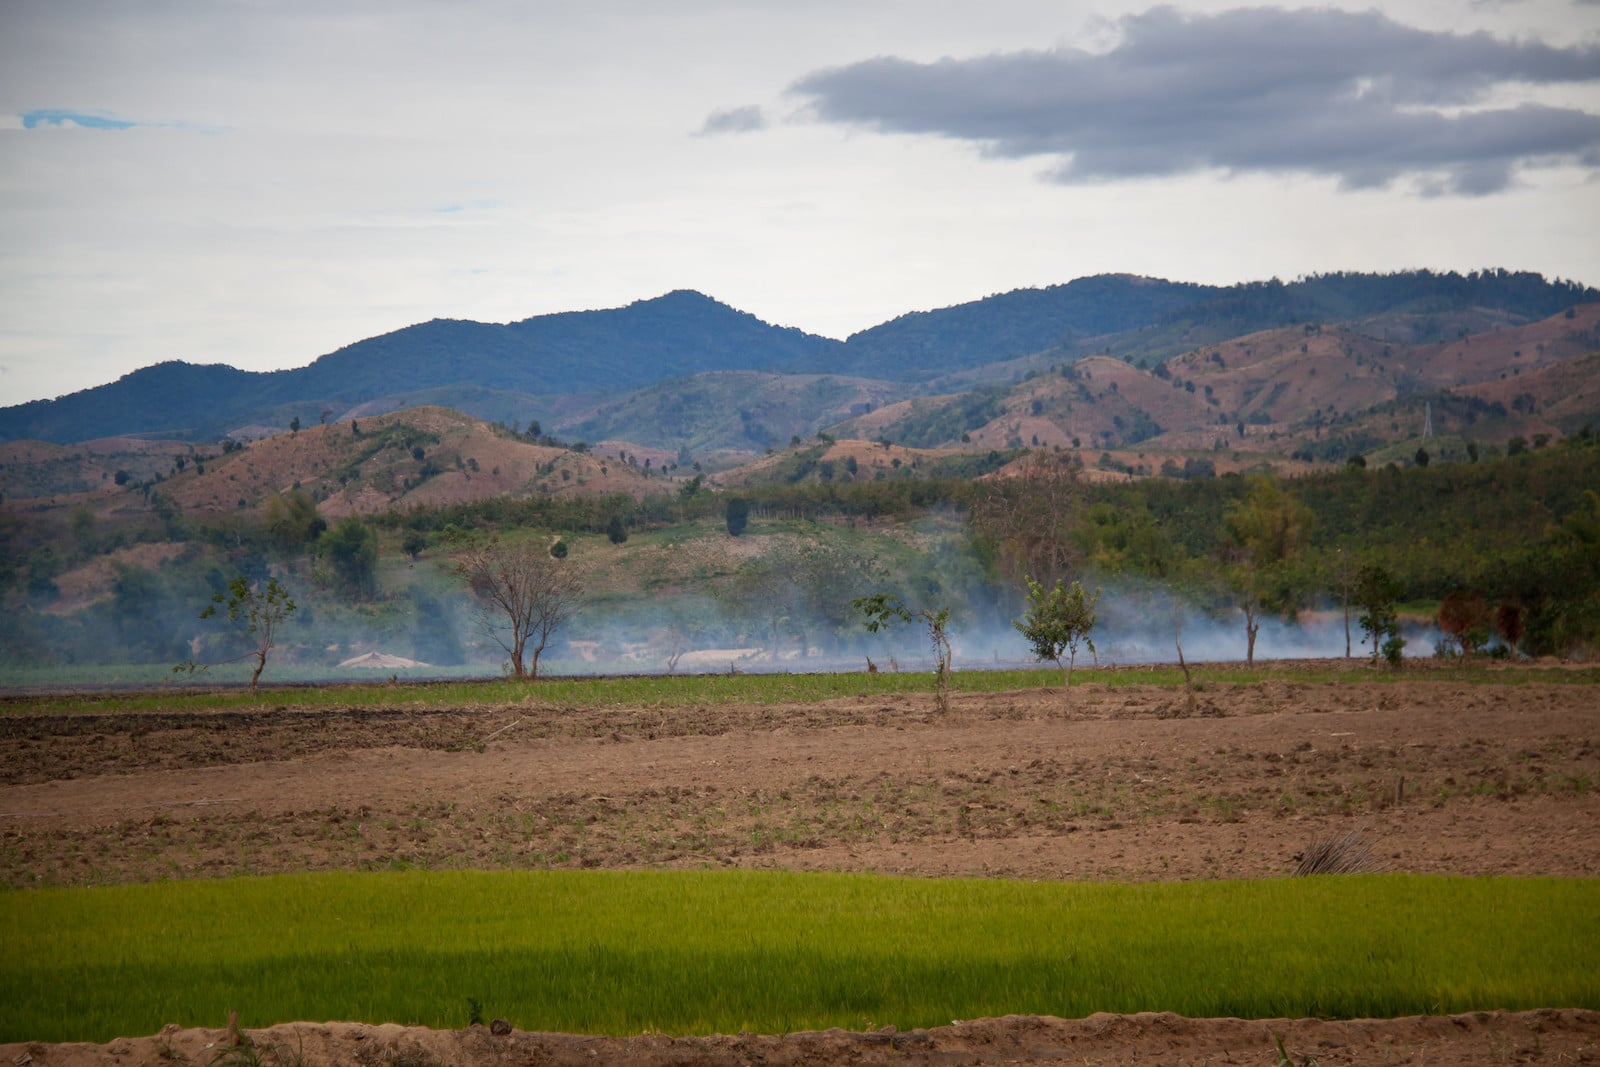 Image of mountains and fields in Kon Tum Province, Vietnam